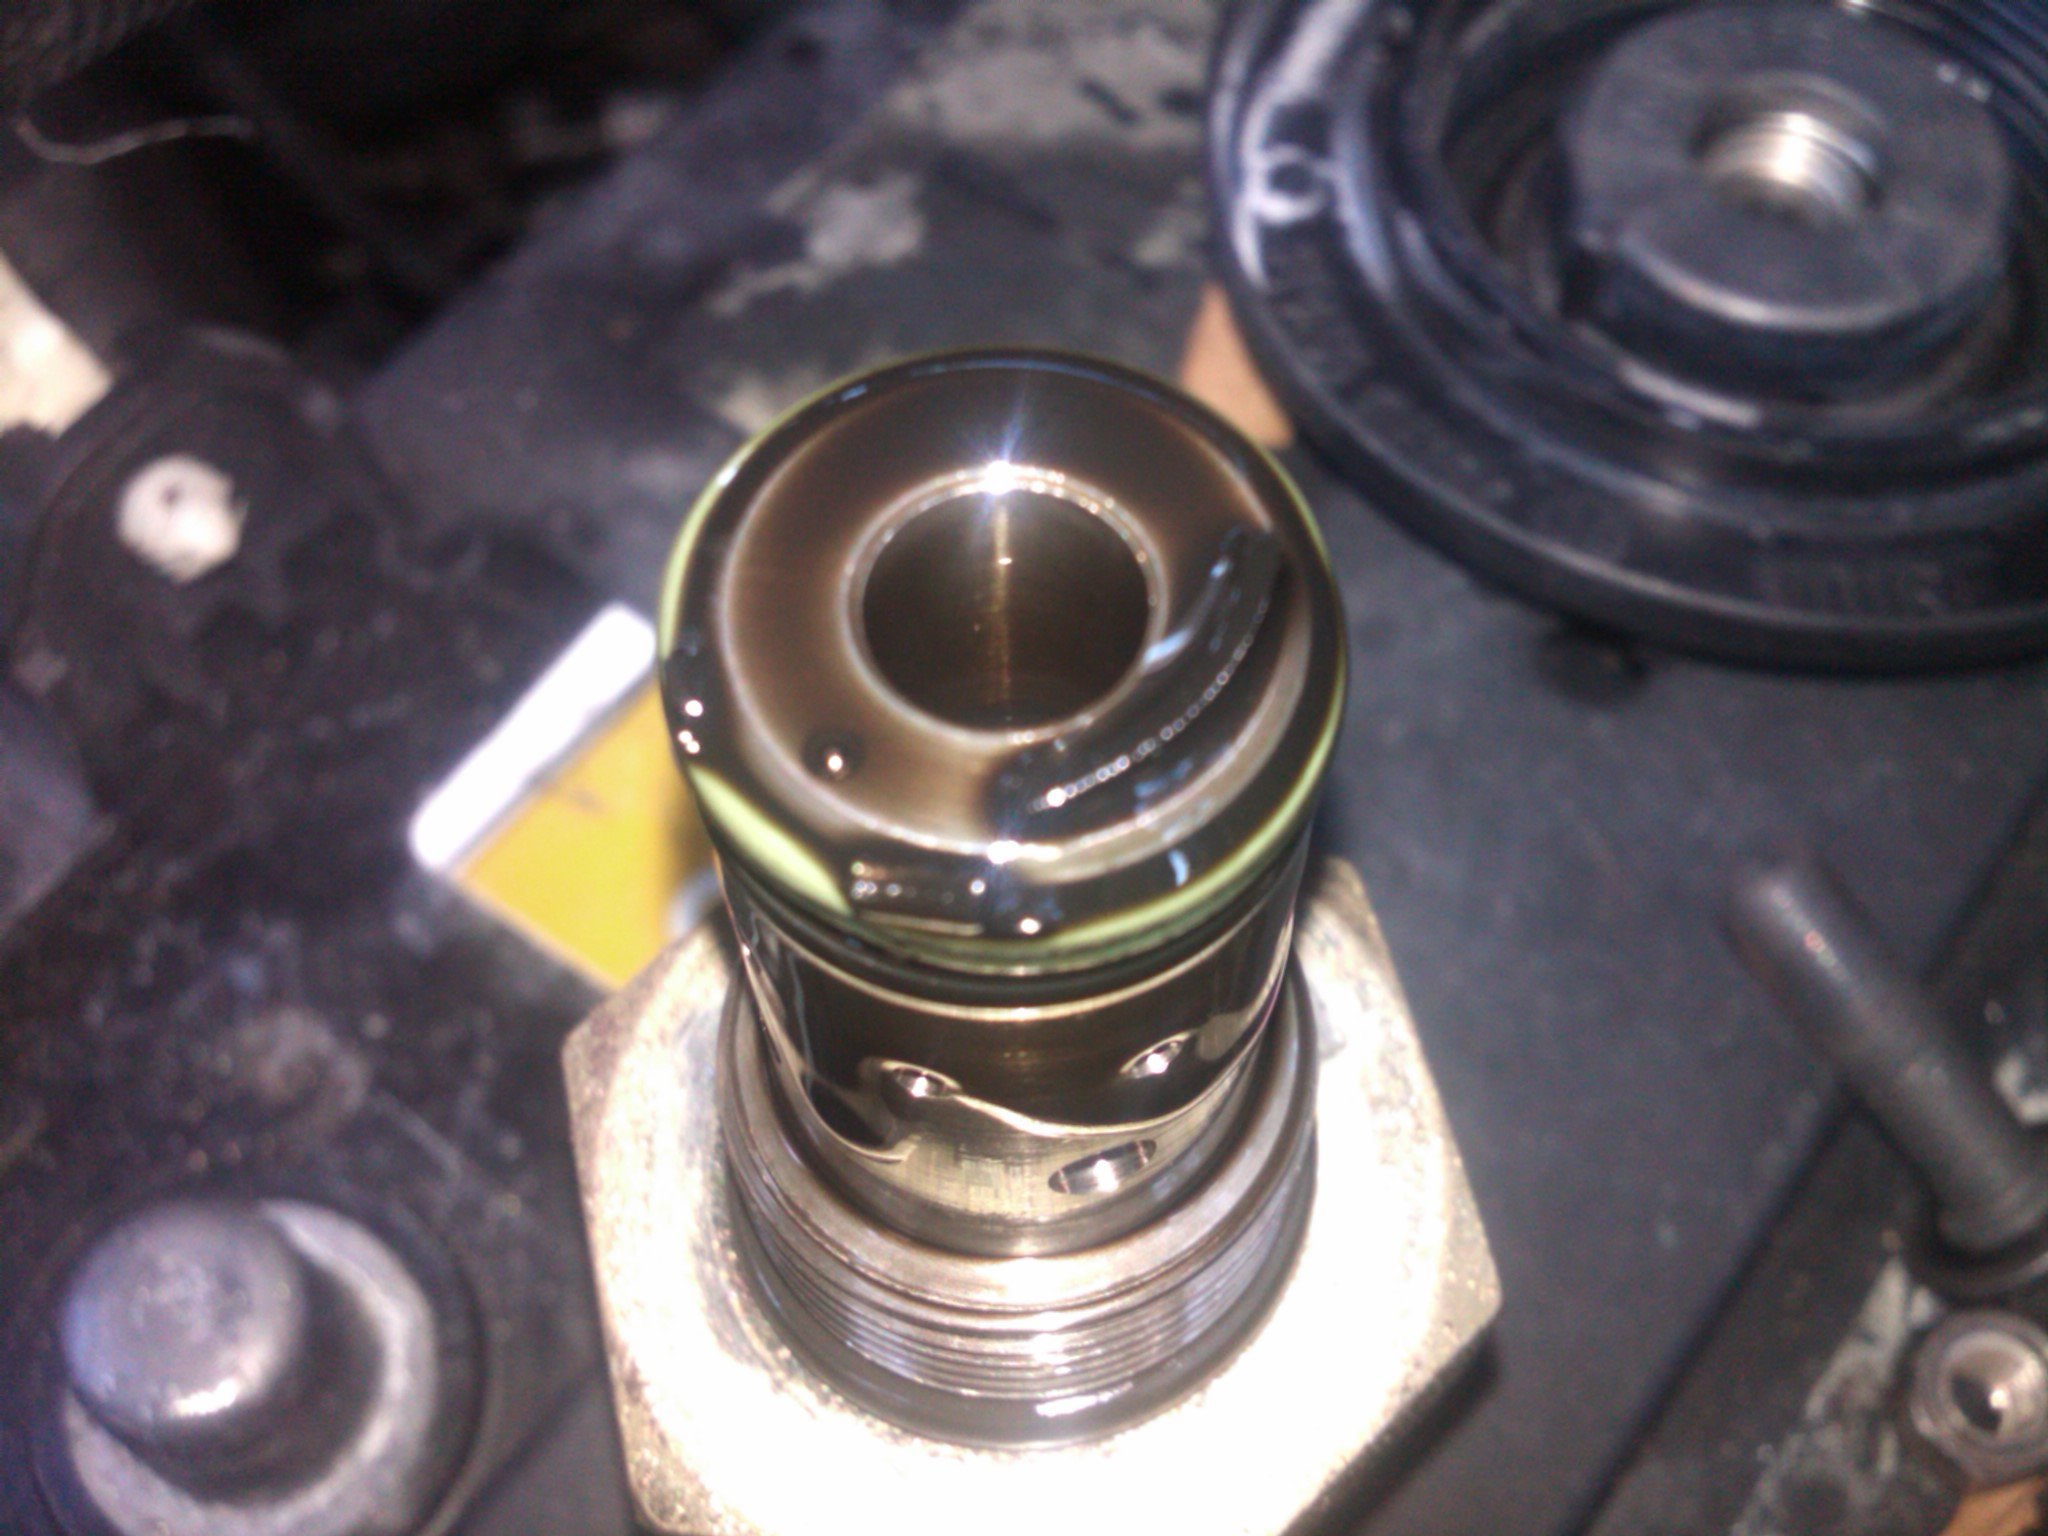 6.0 Powerstroke Crank No Start >> Ran For 15 Minutes After New Oil Cooler Now Crank No Start